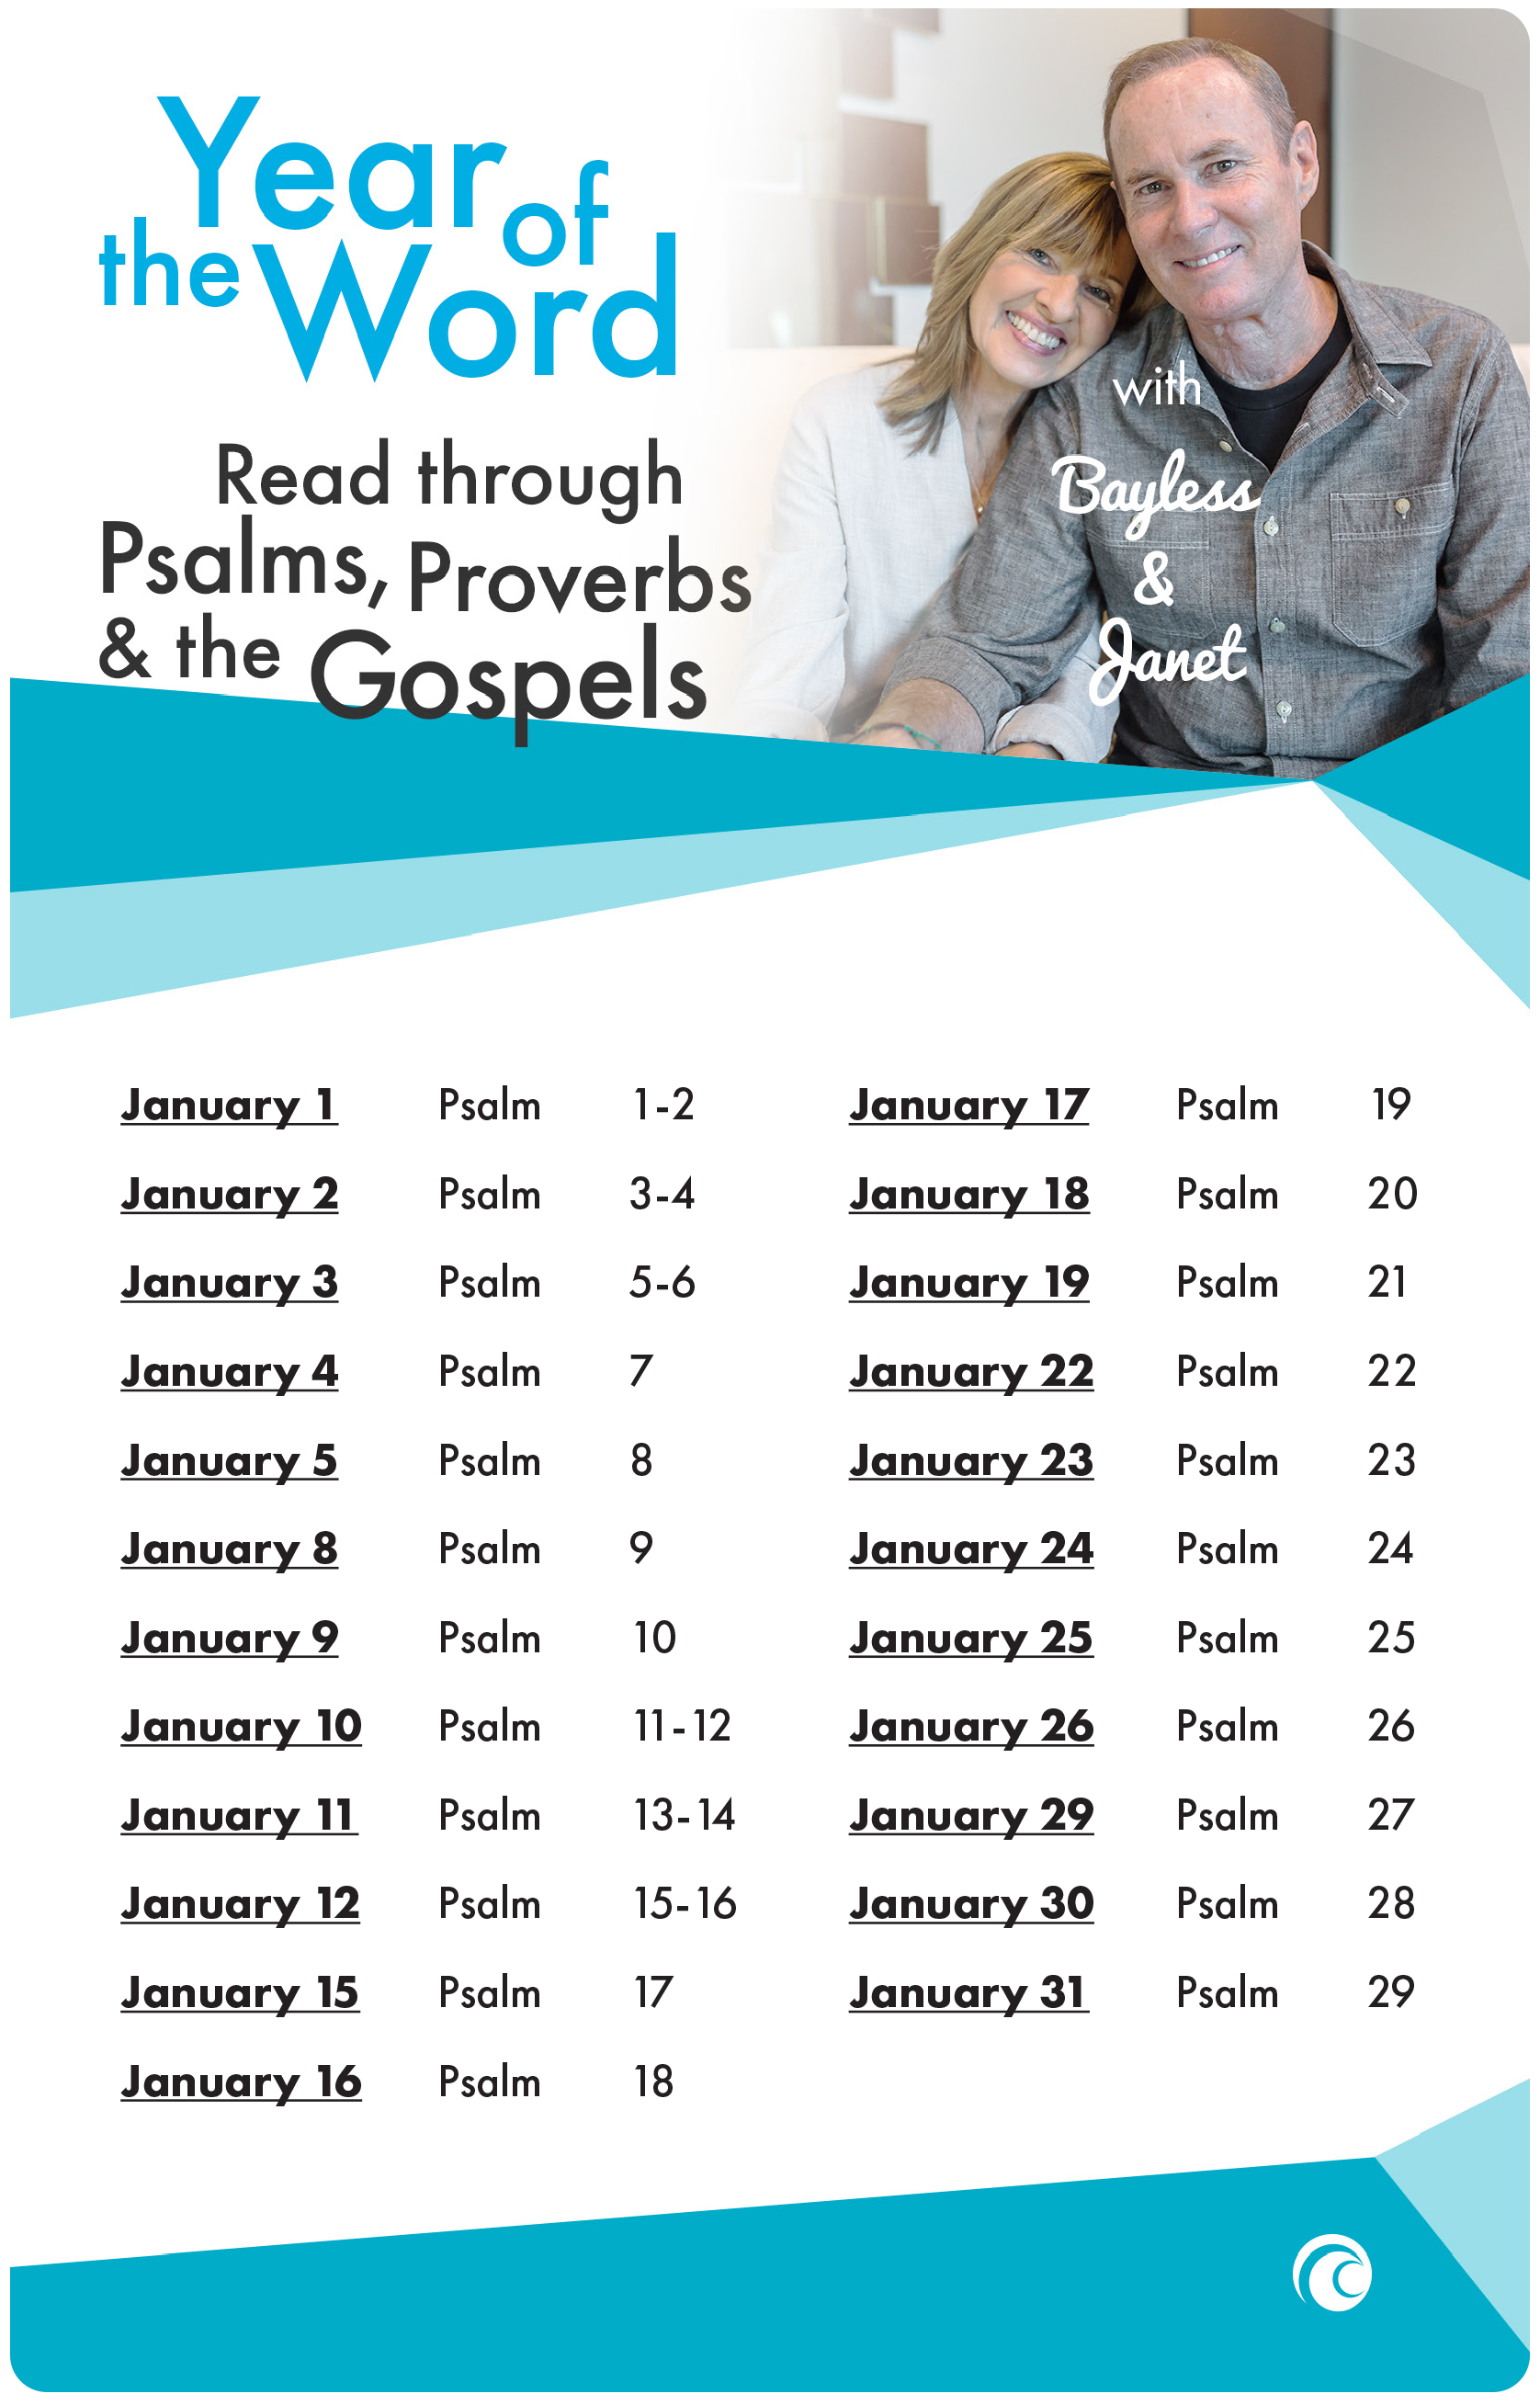 Year of the Word January 2018 Psalms Proverbs Gospels